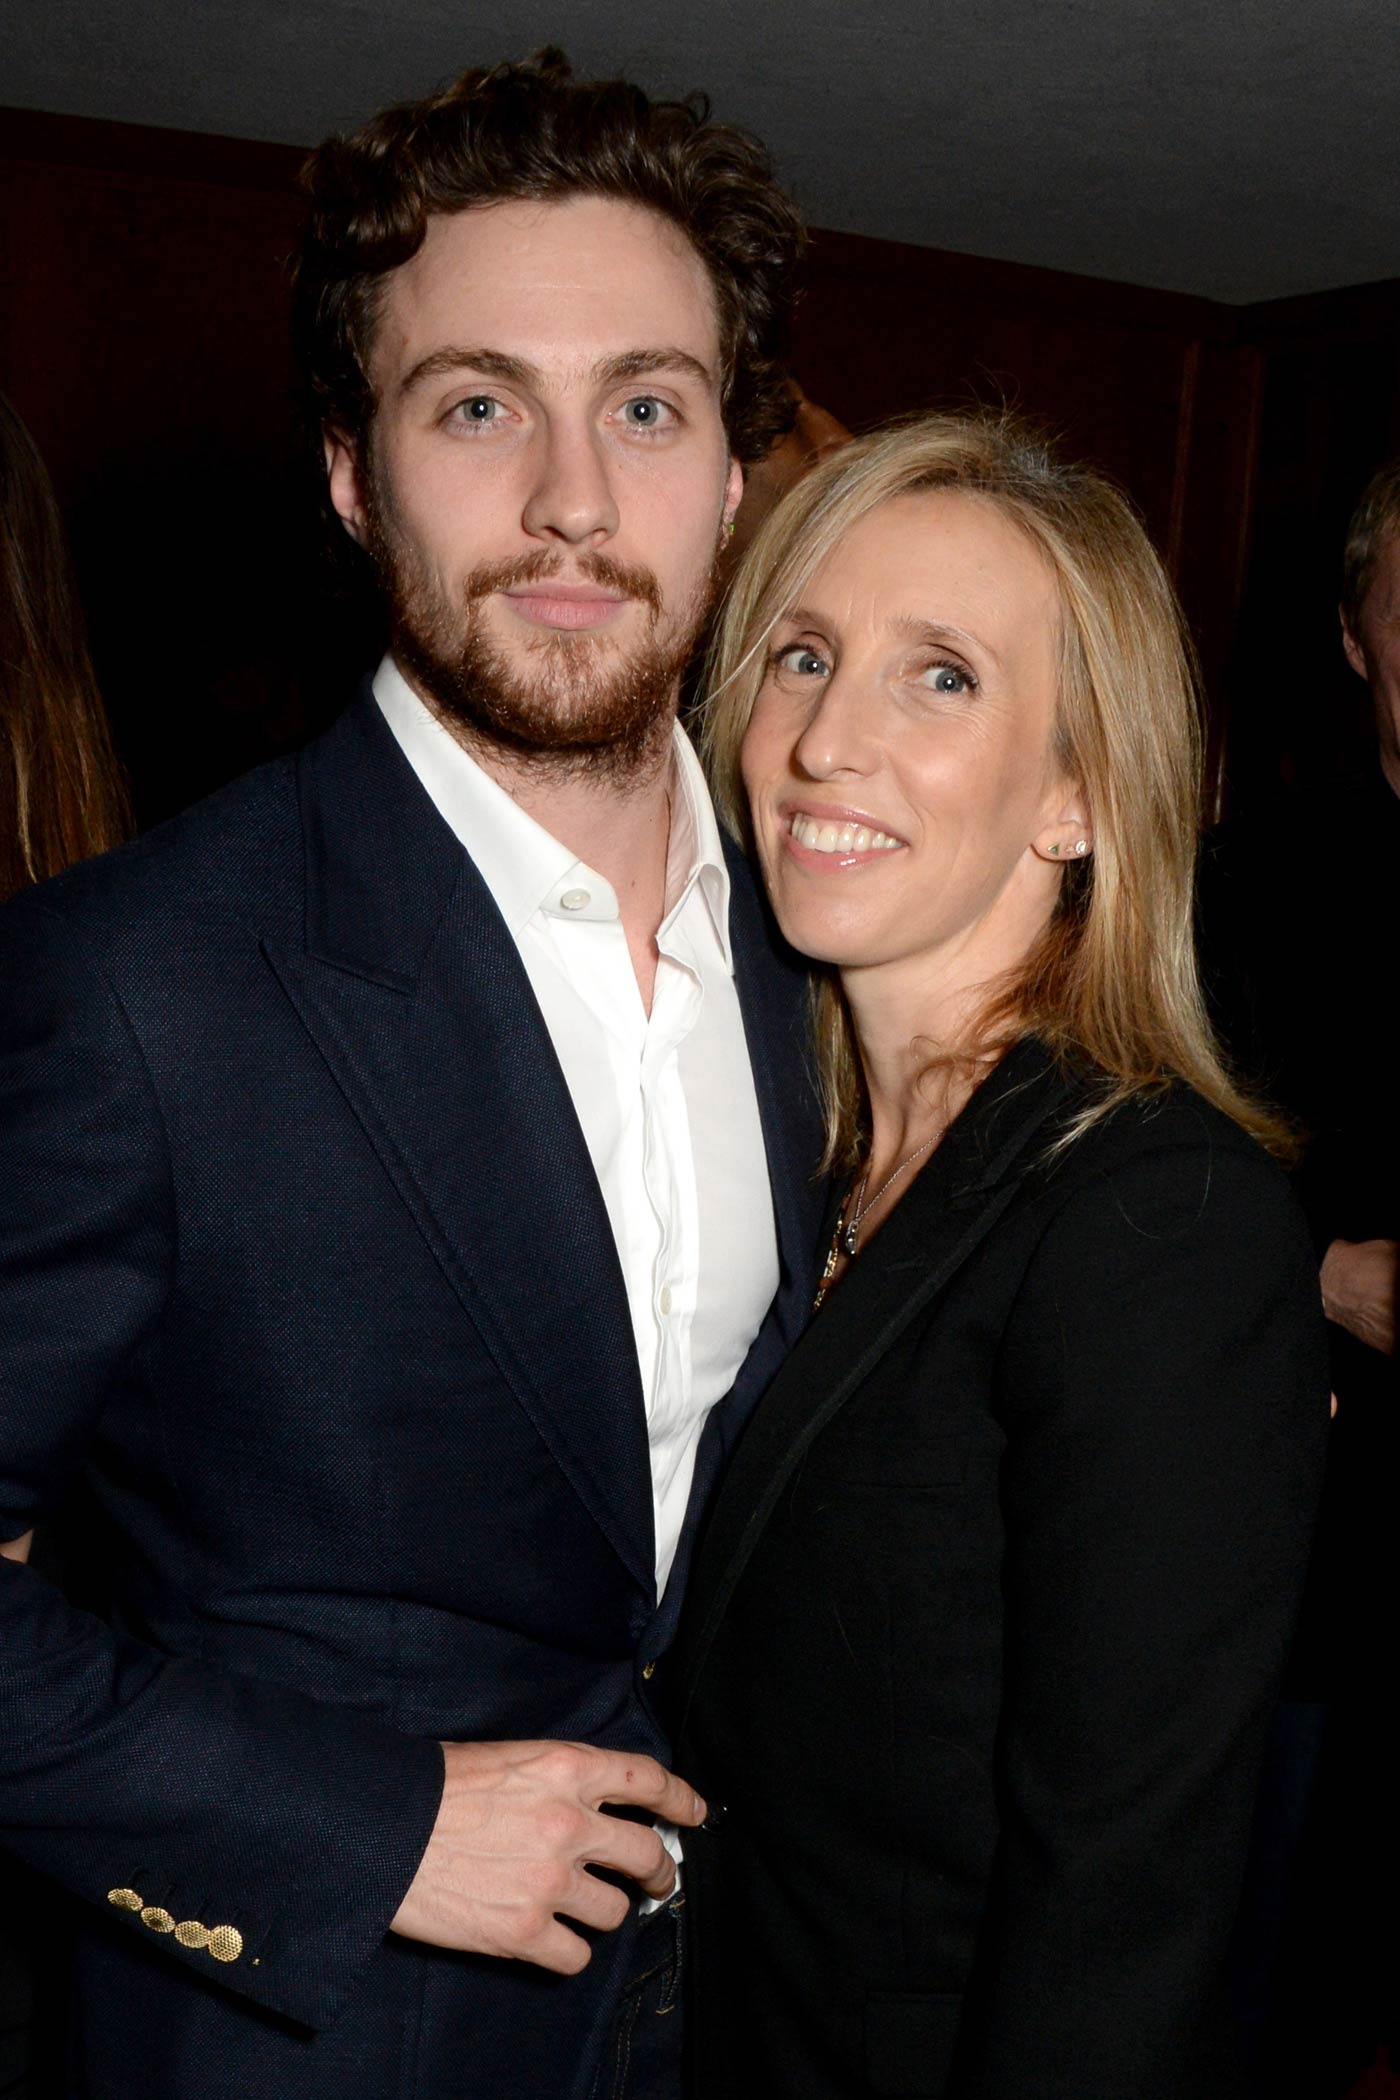 Aaron Taylor-Johnson and Sam Taylor-Johnson attend the Teen Cancer America Fundraiser on Oct. 28, 2014 in Los Angeles, Calif.